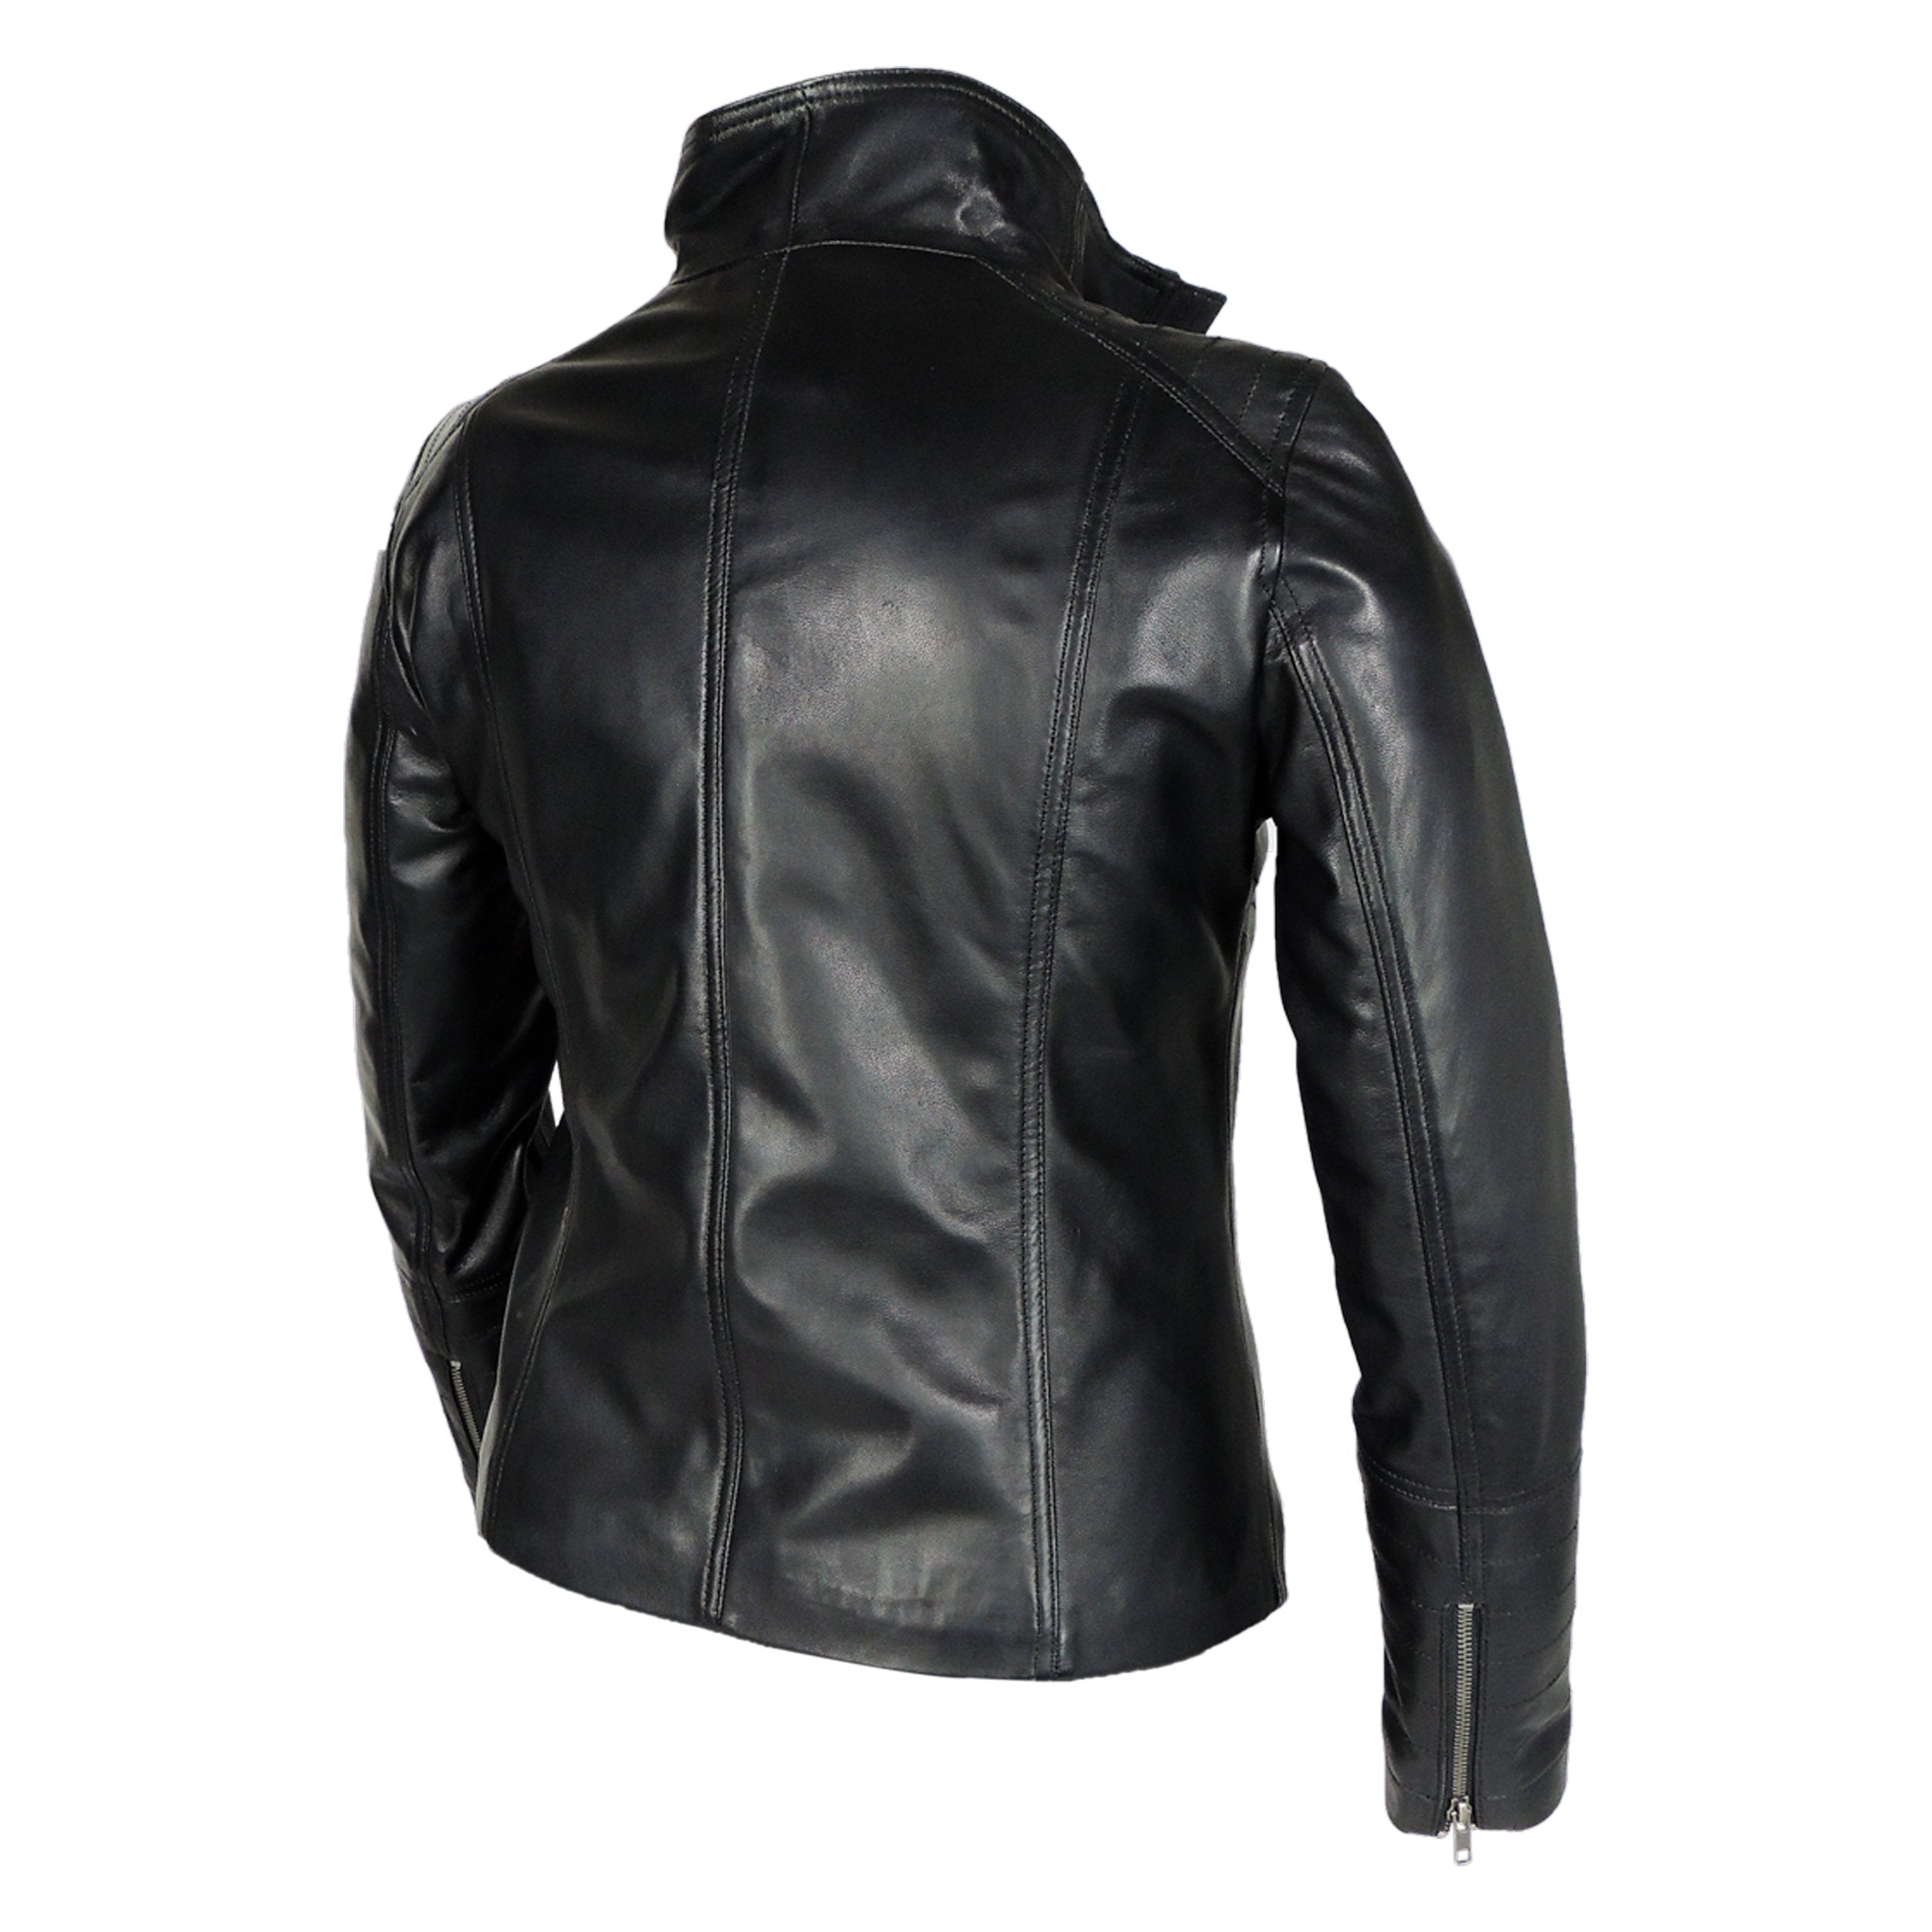 Womens Leather Jacket - Arra Womens Leather Jacket - Discounted!